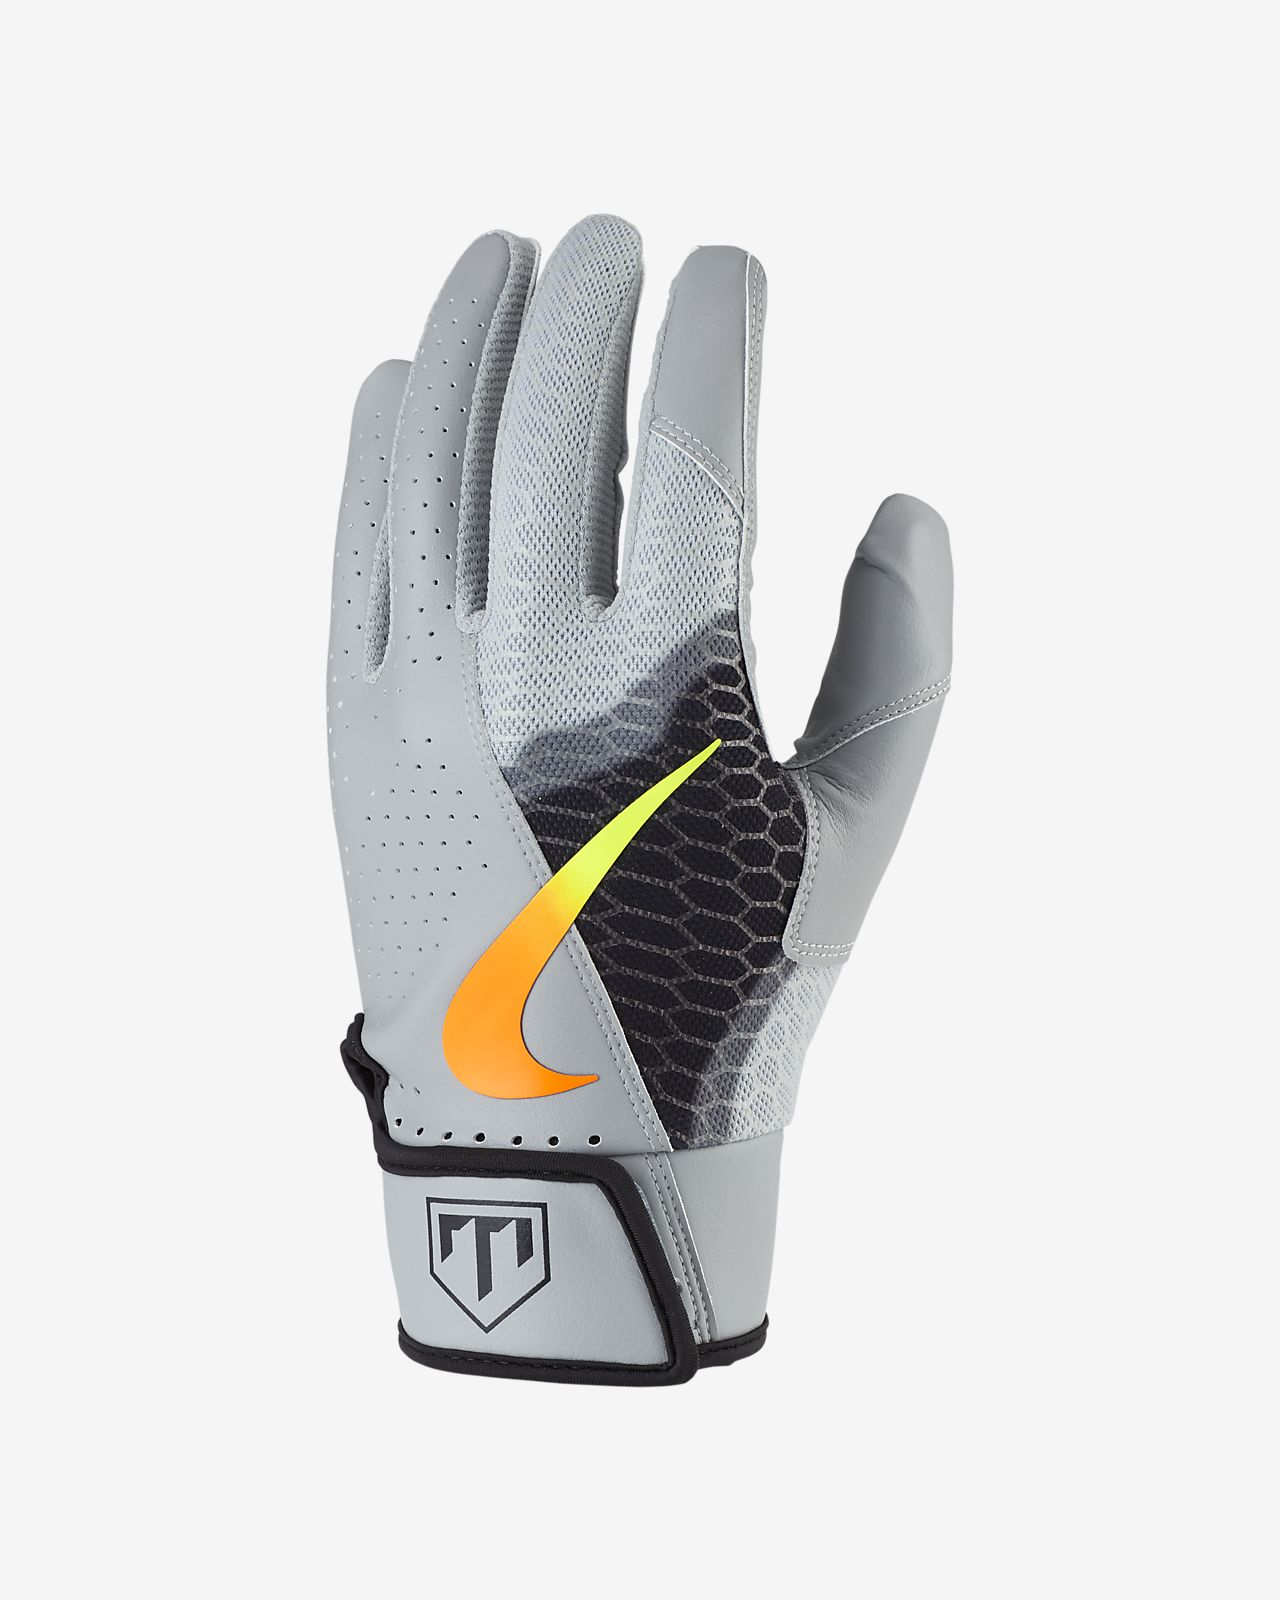 Nike Trout Edge 2.0 Baseball Batting Gloves